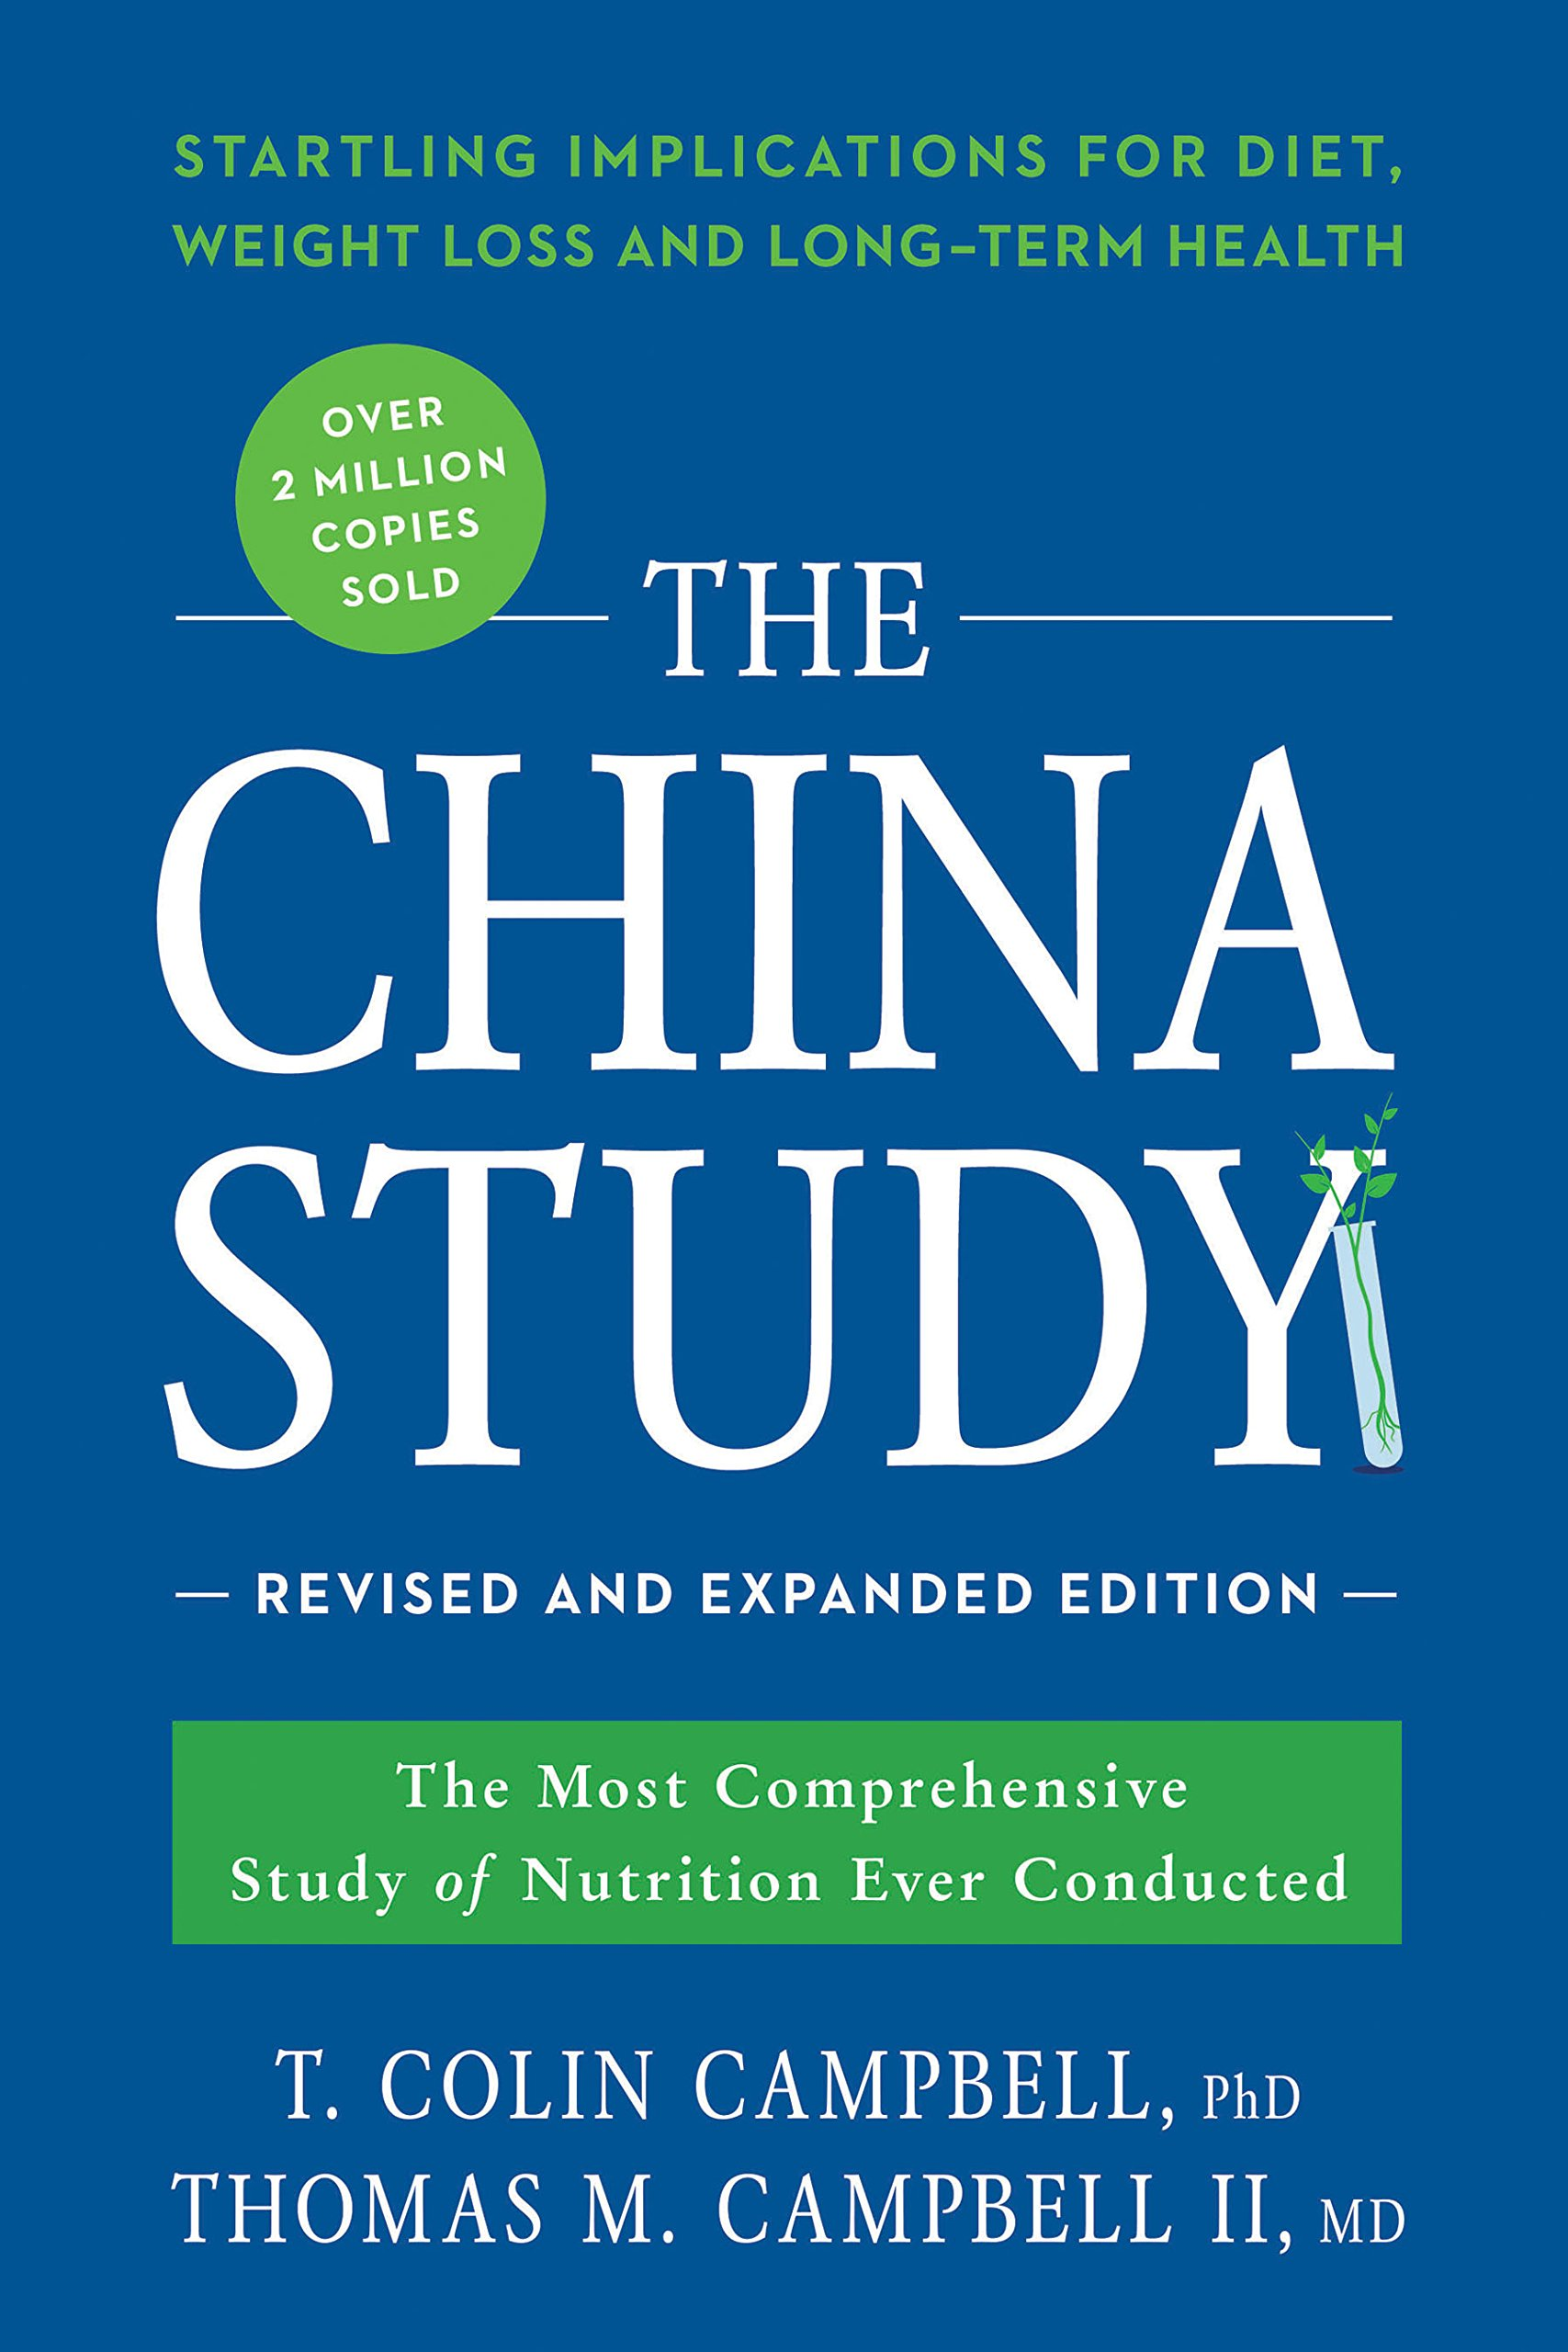 the china Study - By T. Colin Campbell, PhDThe science is clear. The results are unmistakable.You can dramatically reduce your risk of cancer, heart disease, and diabetes just by changing your diet.More than 30 years ago, nutrition researcher T. Colin Campbell and his team at Cornell, in partnership with teams in China and England, embarked upon the China Study, the most comprehensive study ever undertaken of the relationship between diet and the risk of developing disease. What they found when combined with findings in Colin's laboratory, opened their eyes to the dangers of a diet high in animal protein and the unparalleled health benefits of a whole foods, plant-based diet.In 2005, Colin and his son Tom, now a physician, shared those findings with the world in The China Study, hailed as one of the most important books about diet and health ever written.